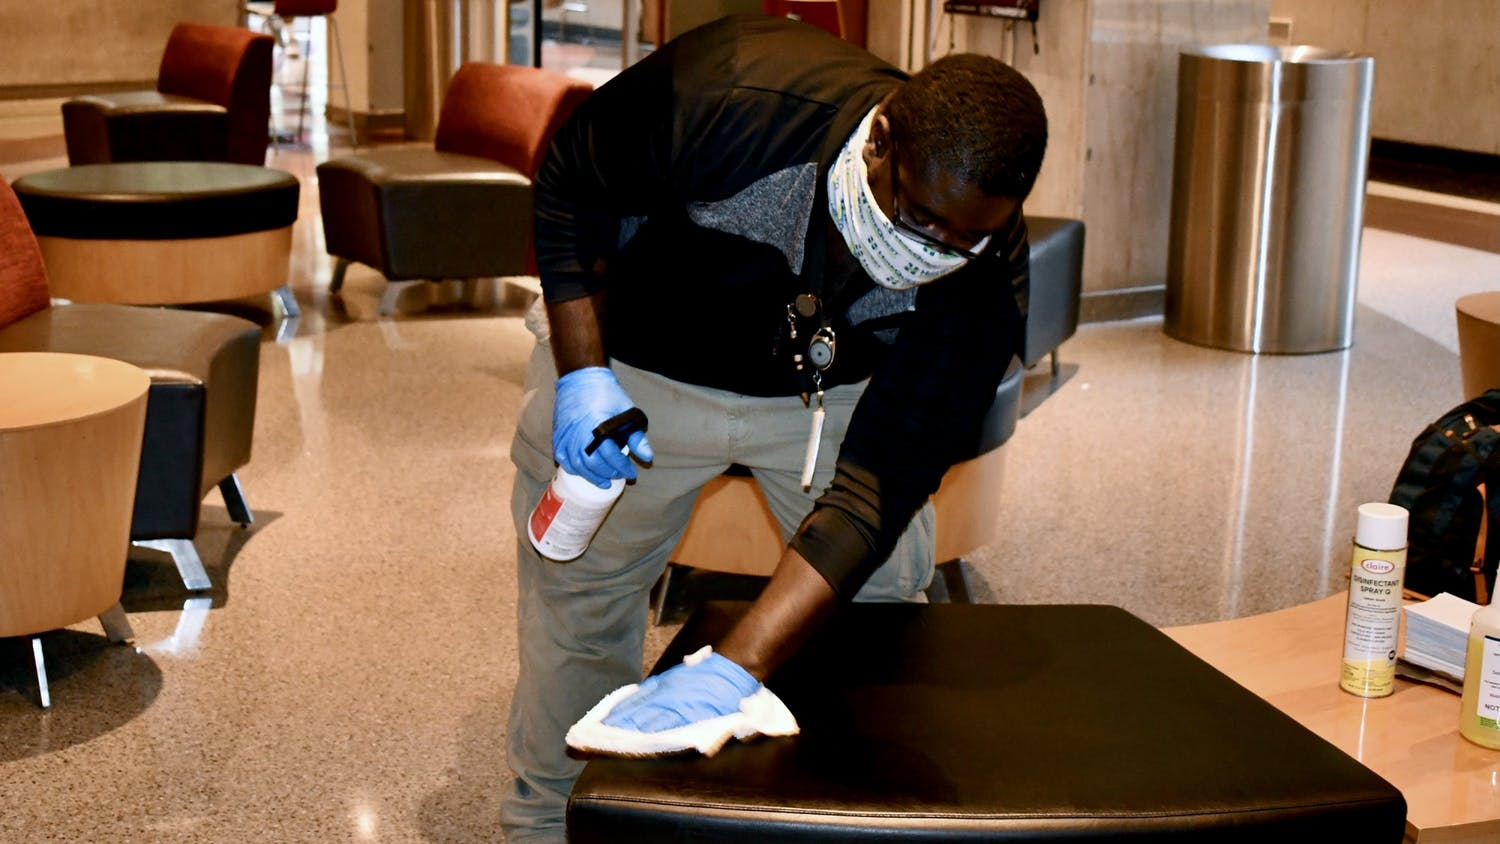 A member of the USC custodial staff cleans a seat in Russell House.